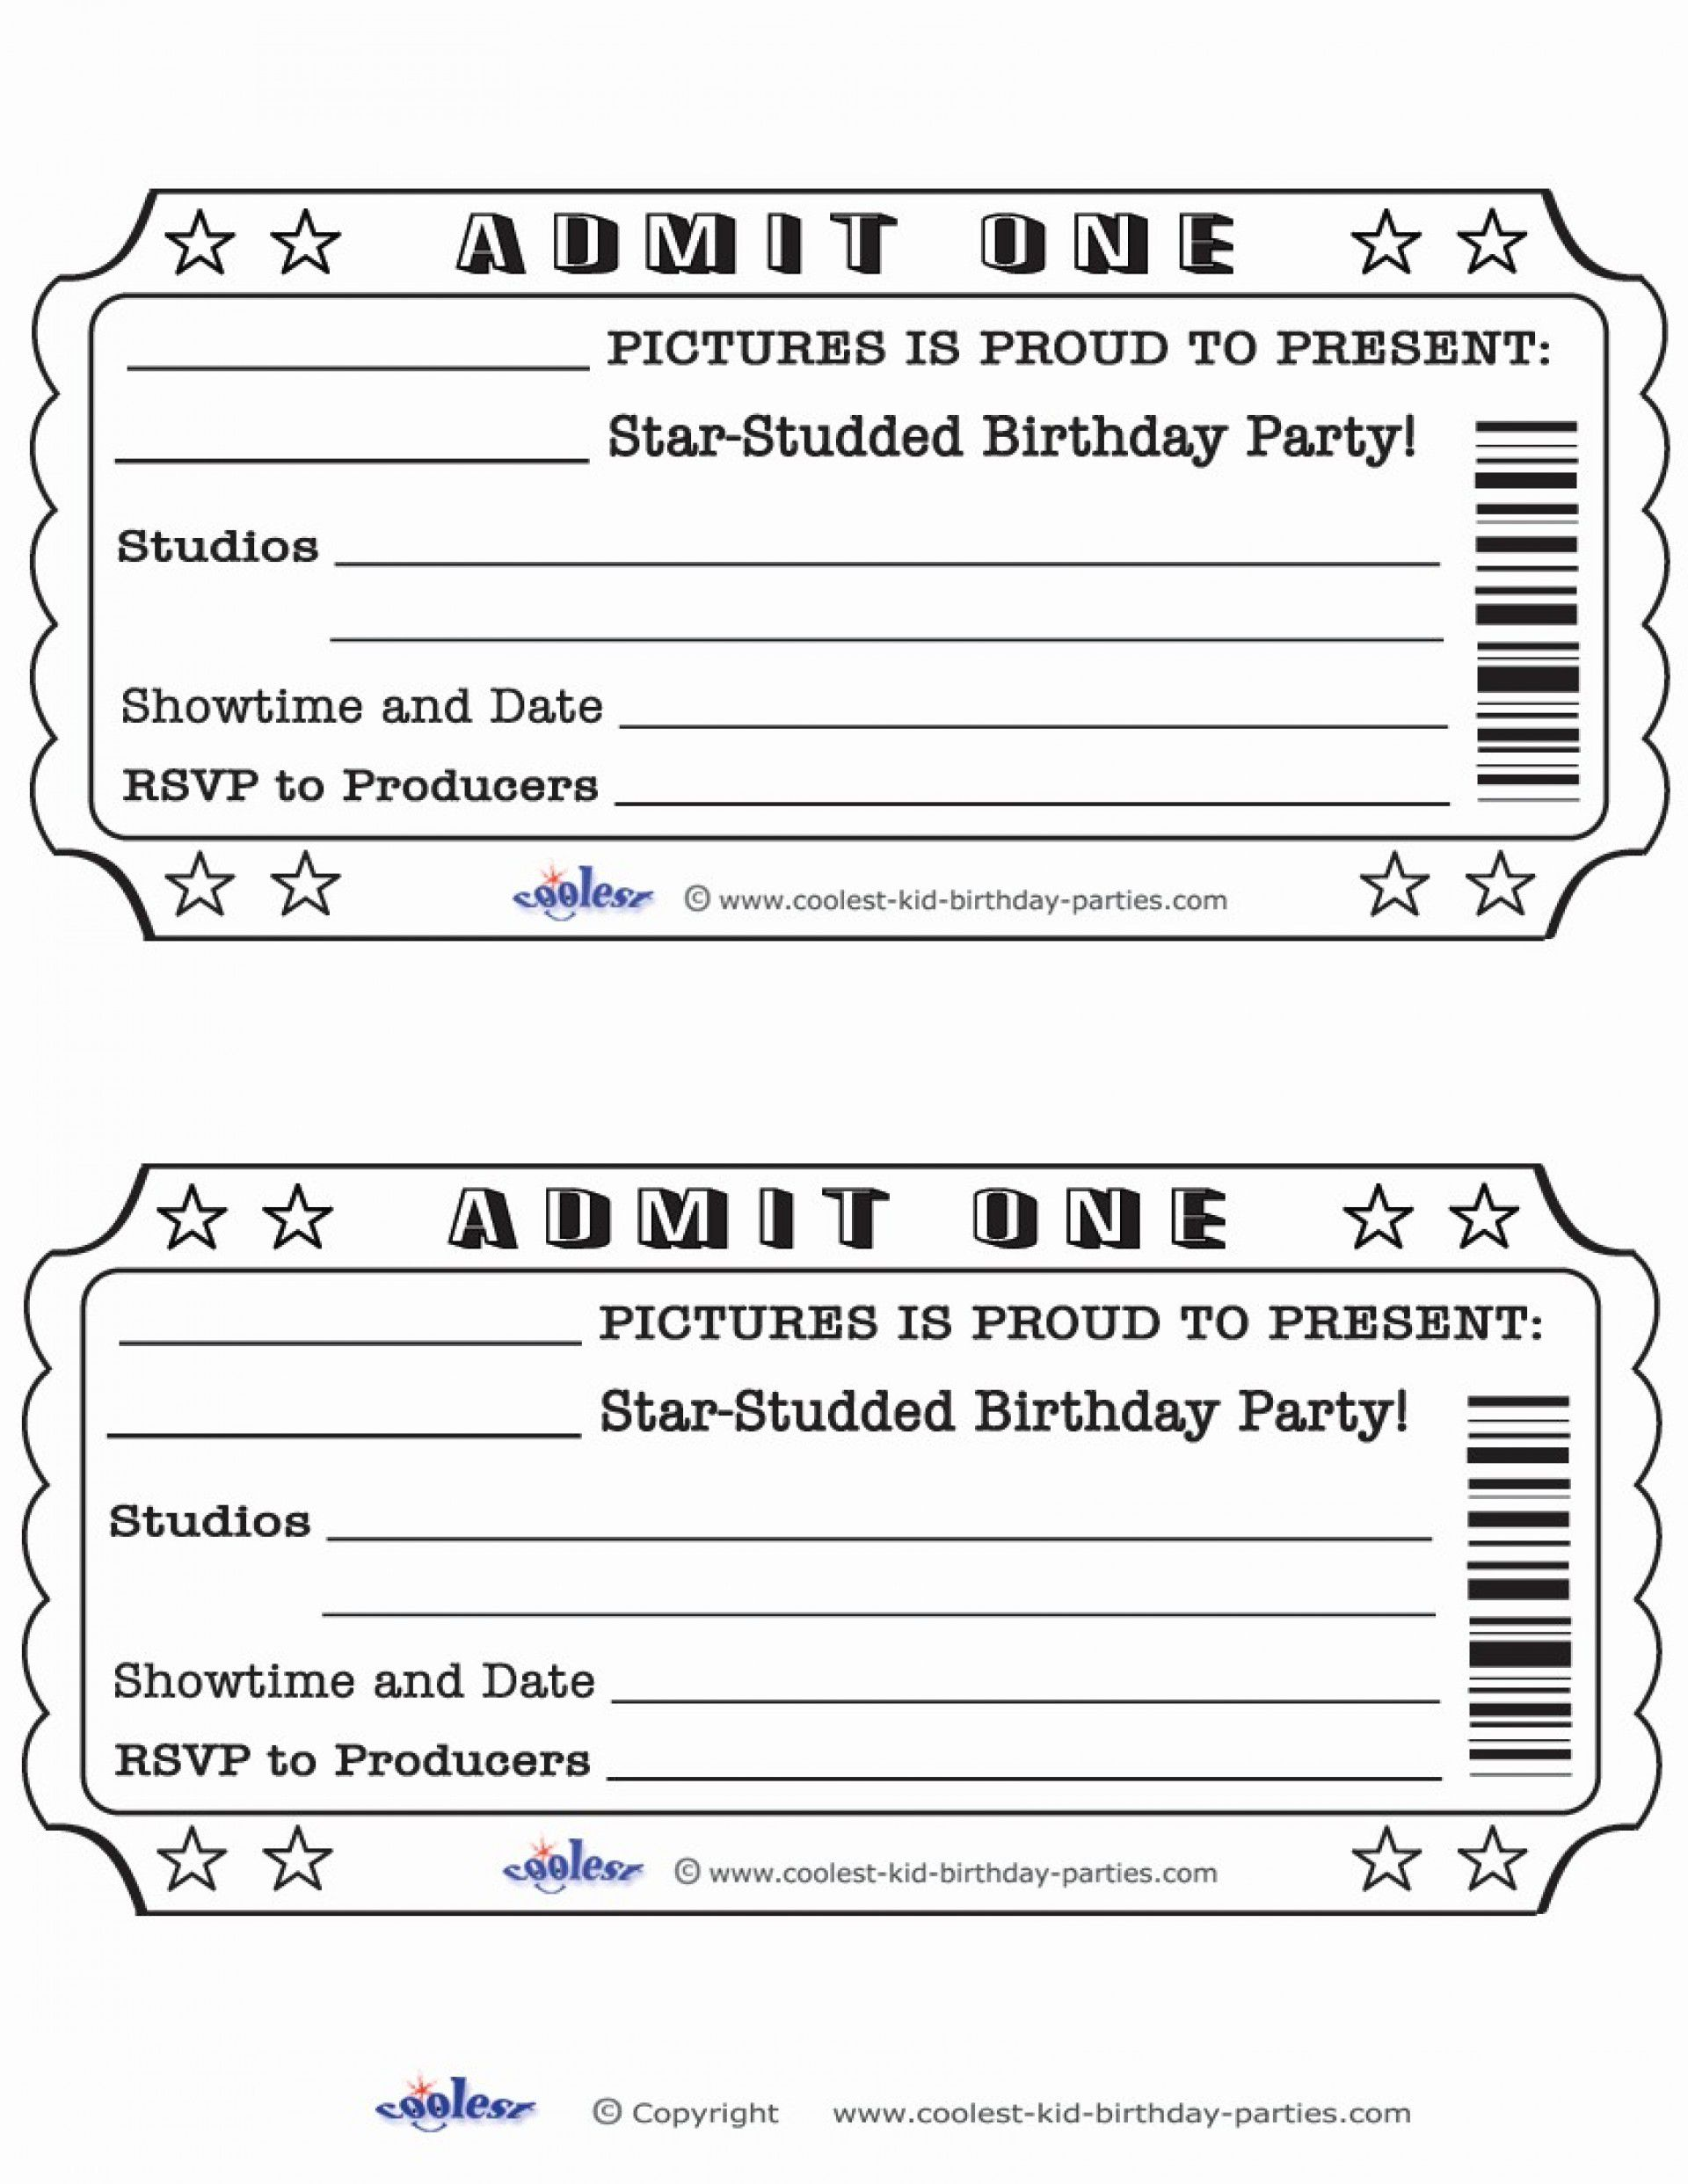 004 Unusual Free Printable Ticket Template High Definition  Raffle Printing Airline For Gift ConcertFull